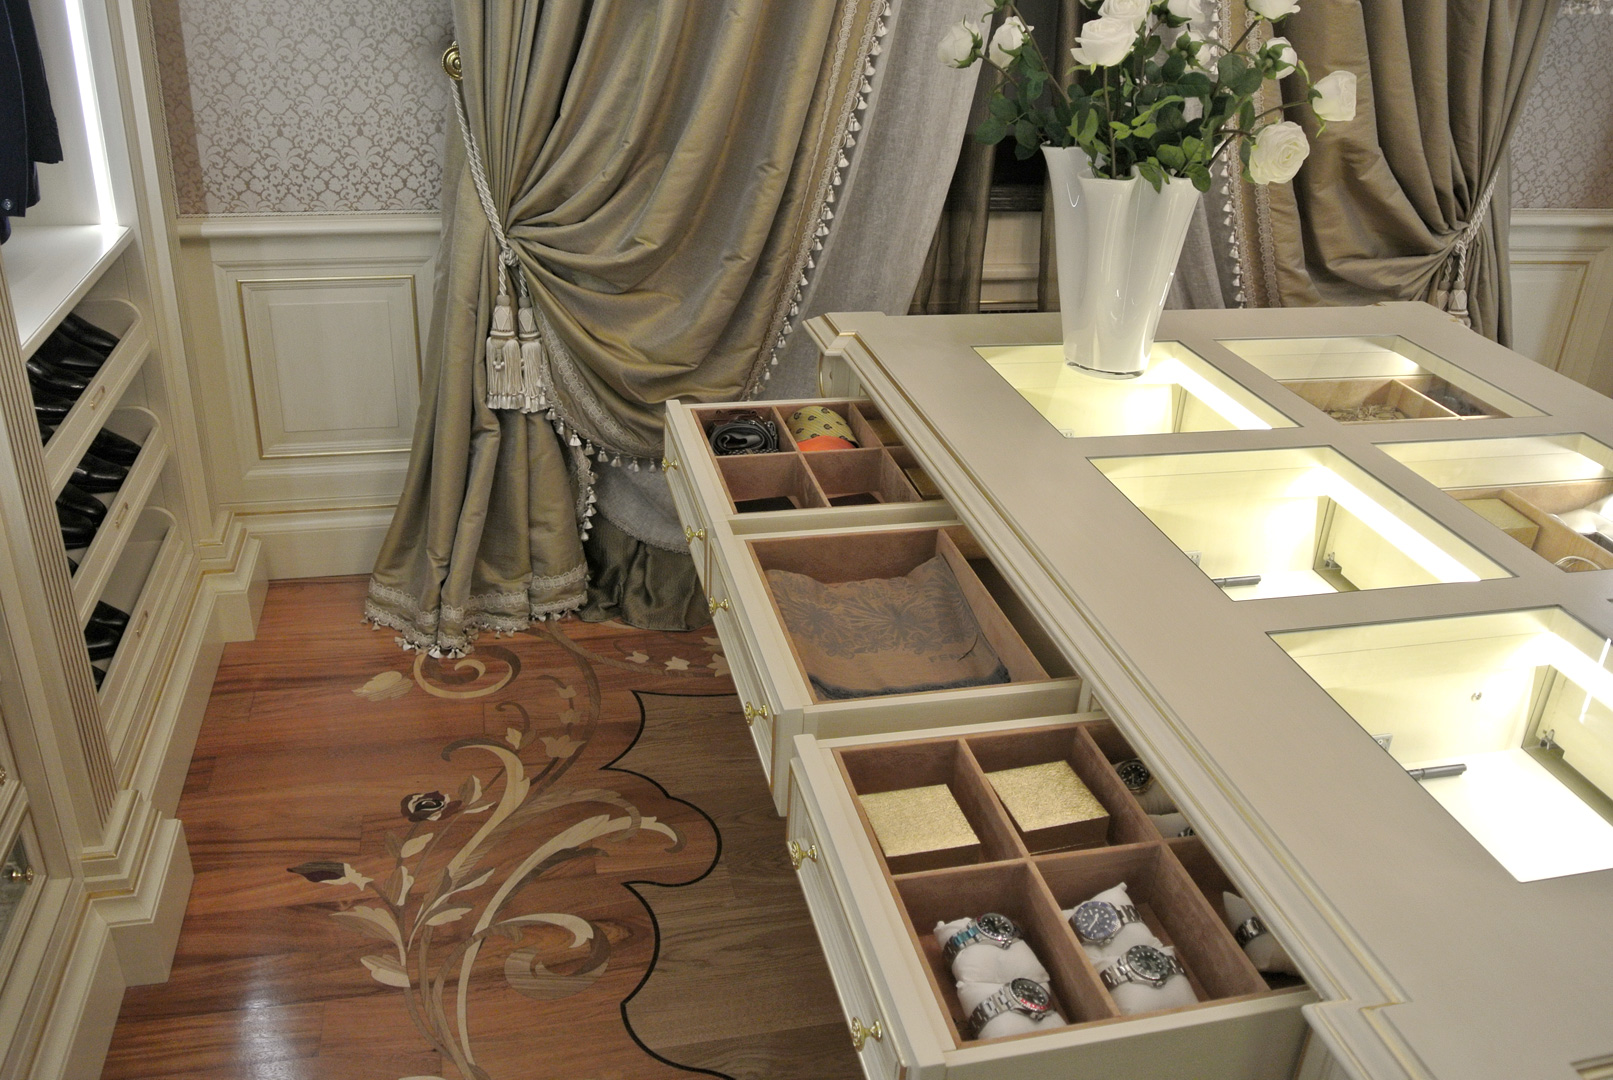 Particular detail of extractable drawers of the island for accessories